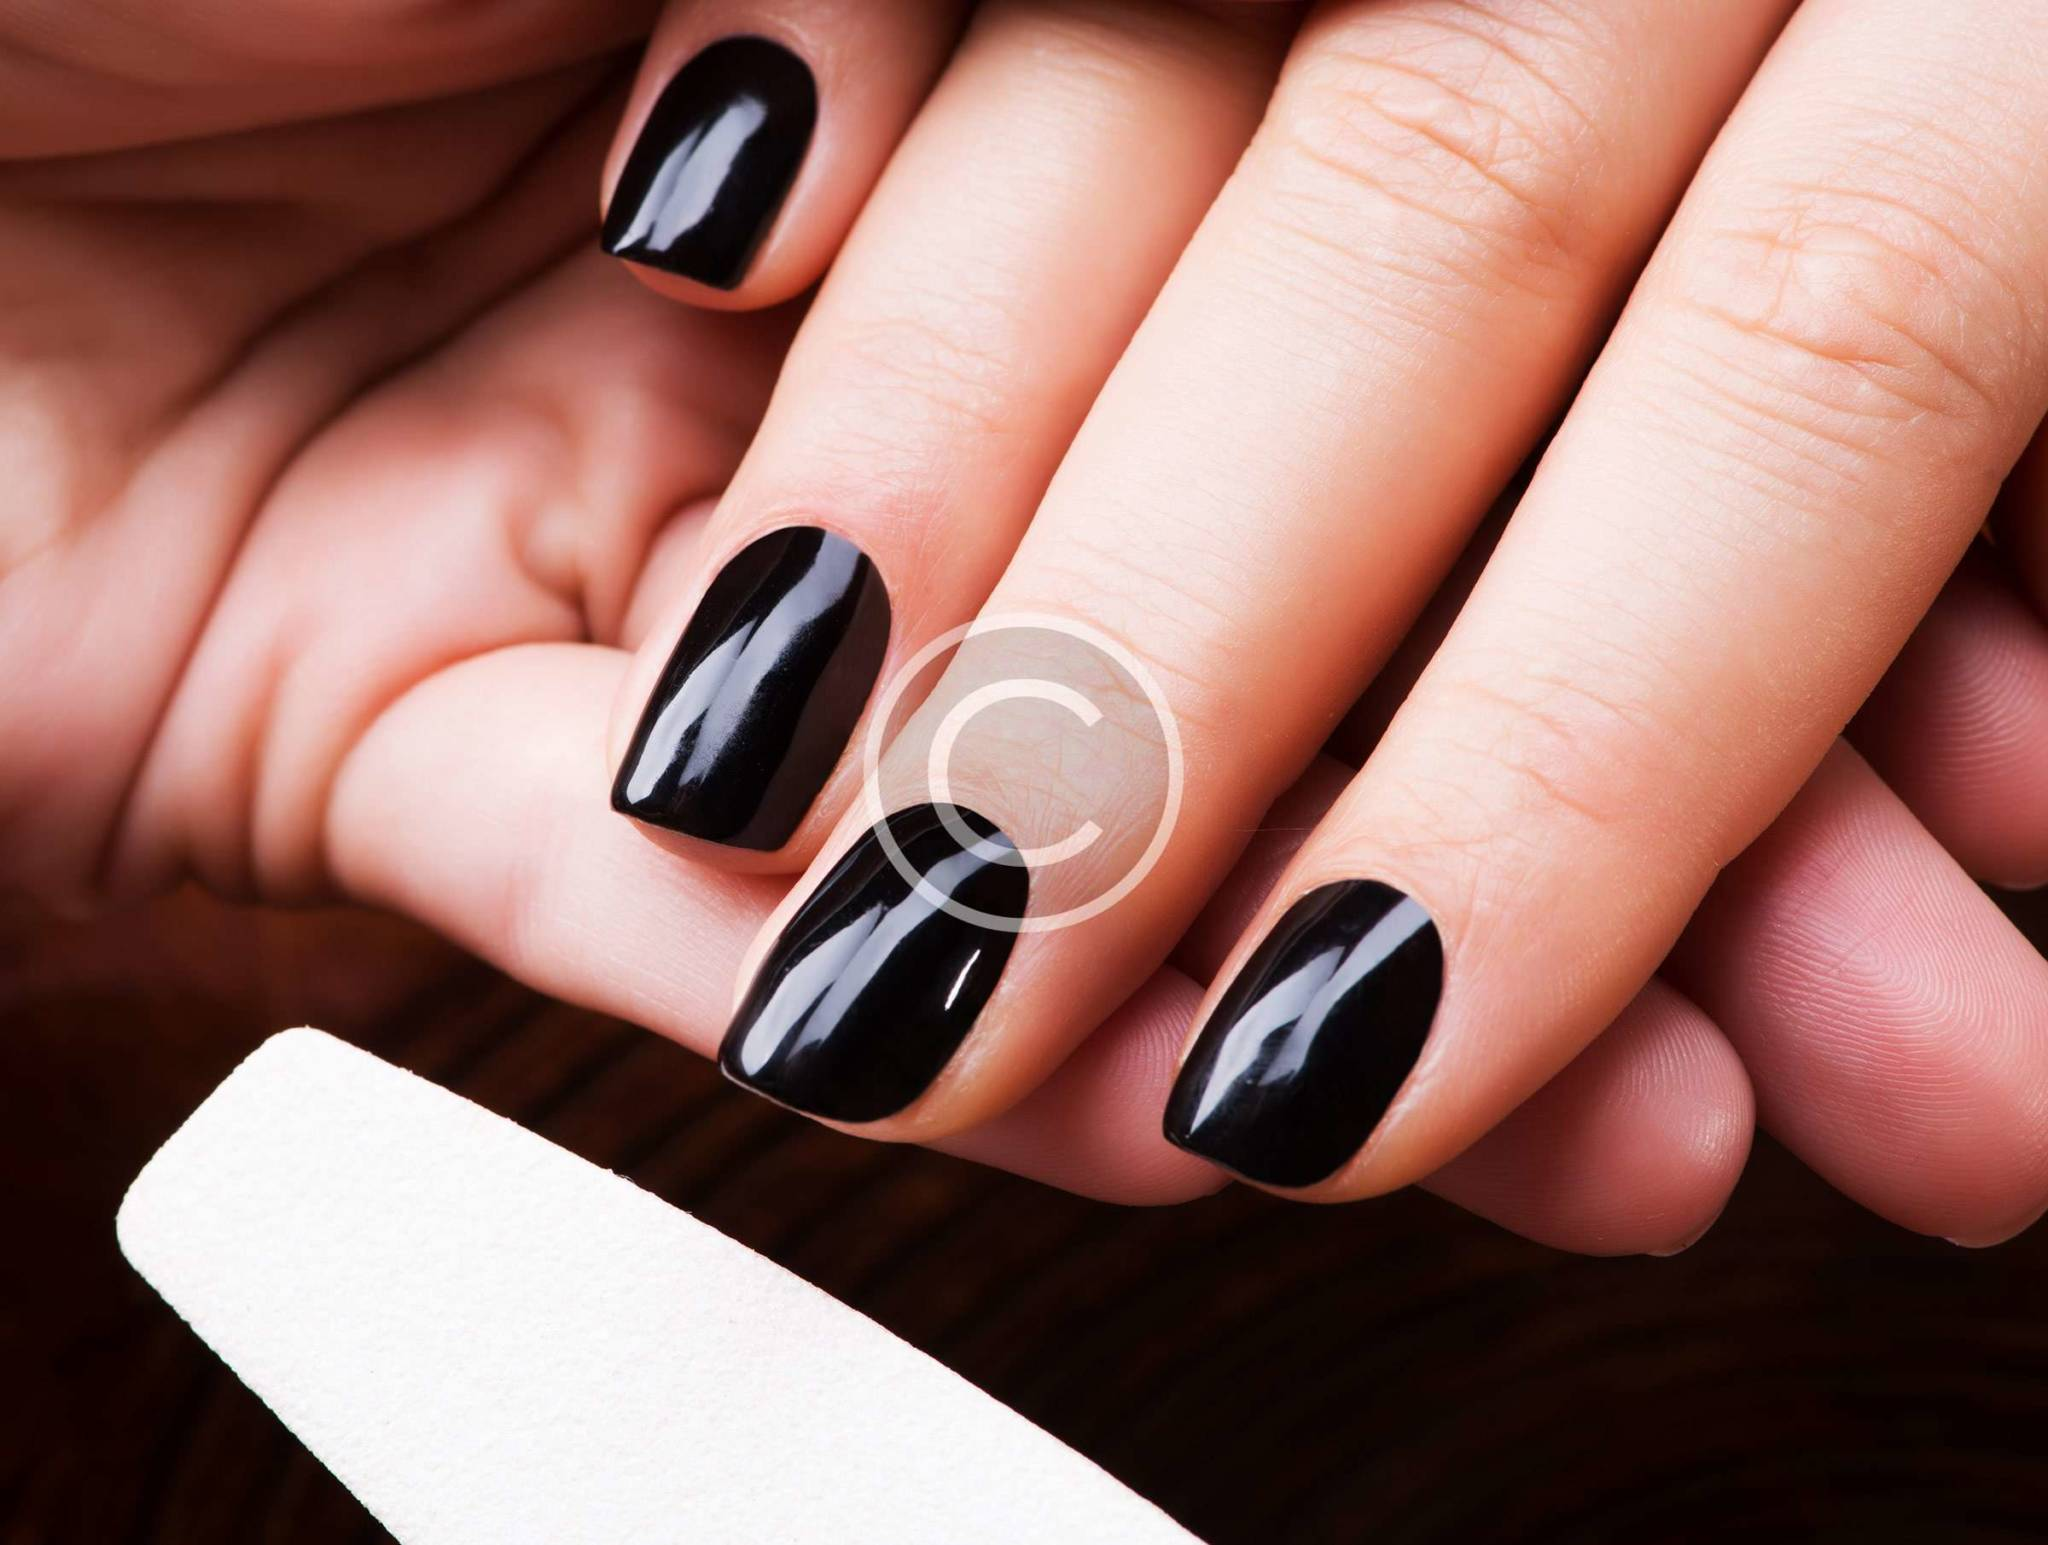 how to fix false nails at home